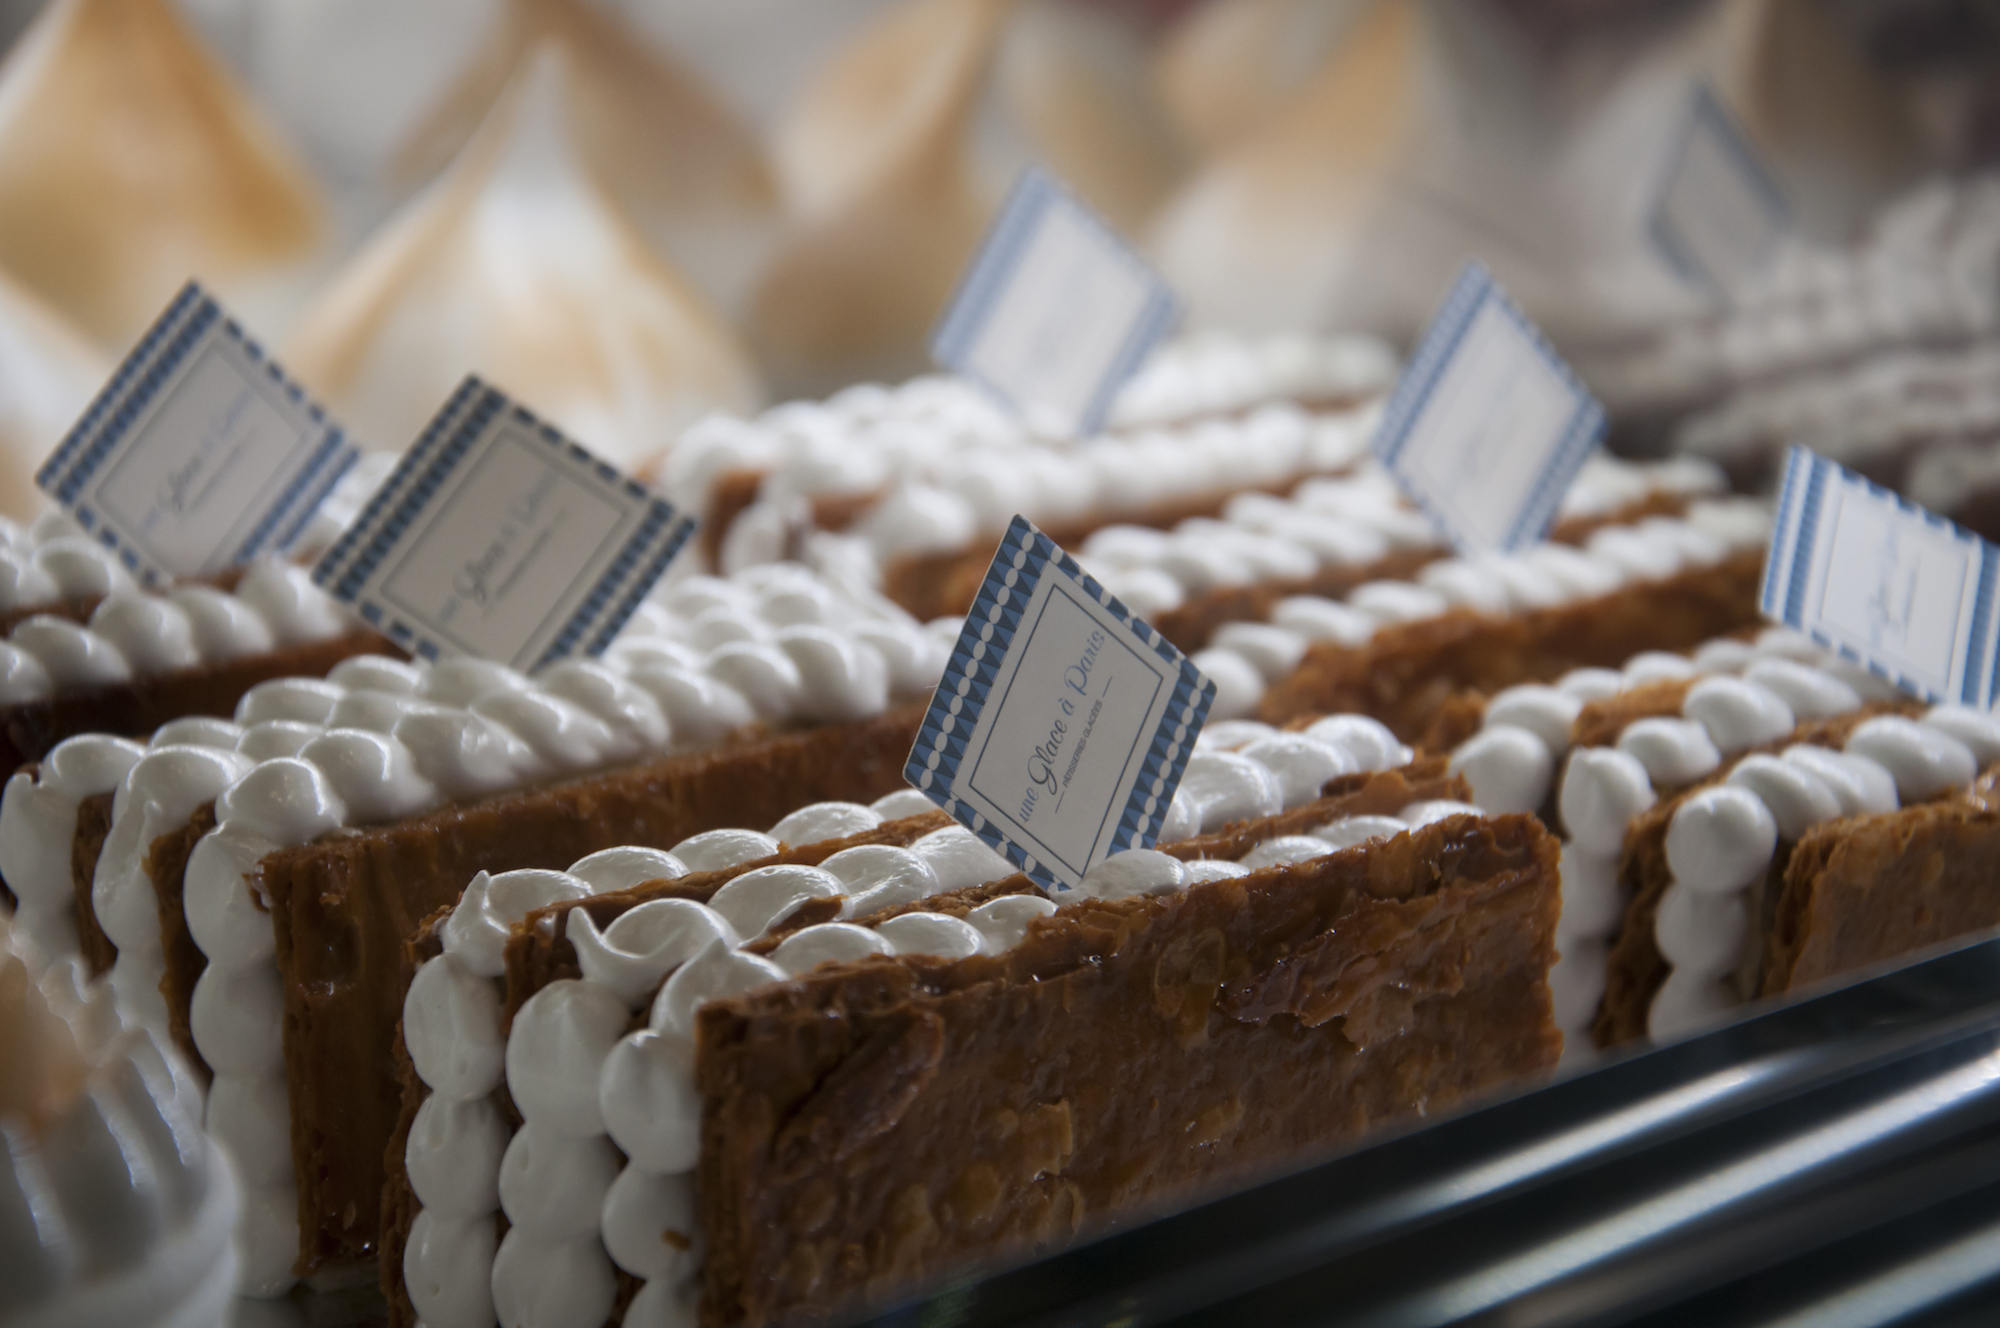 One of the best artisanal ice cream shops in Paris is Une Glace à Paris and it also offers pretty ice cream cakes.